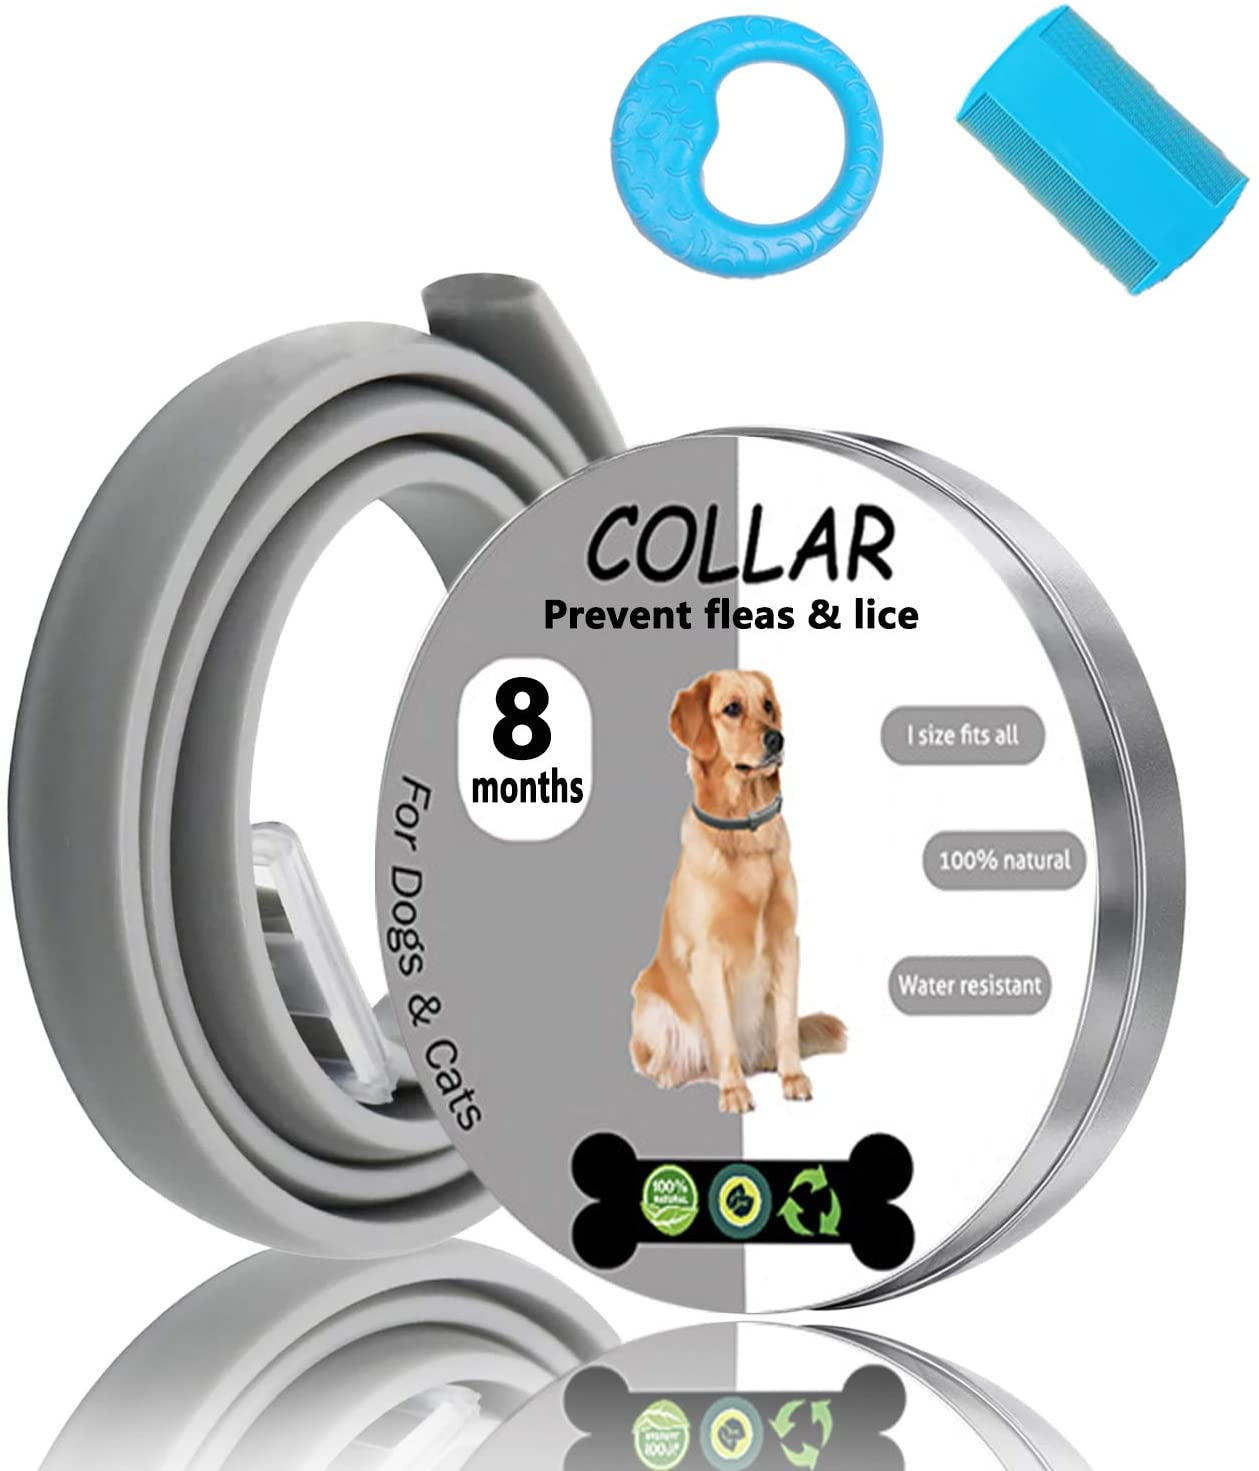 Petty Helper Flea Collar for Dogs Cats-8 Months Protection-No Allergic & Waterproof & Adjustable Design-100% Natural Essential Oil Treatment & Prevention Collar-Give-Away flea Comb&Dog chew Toy